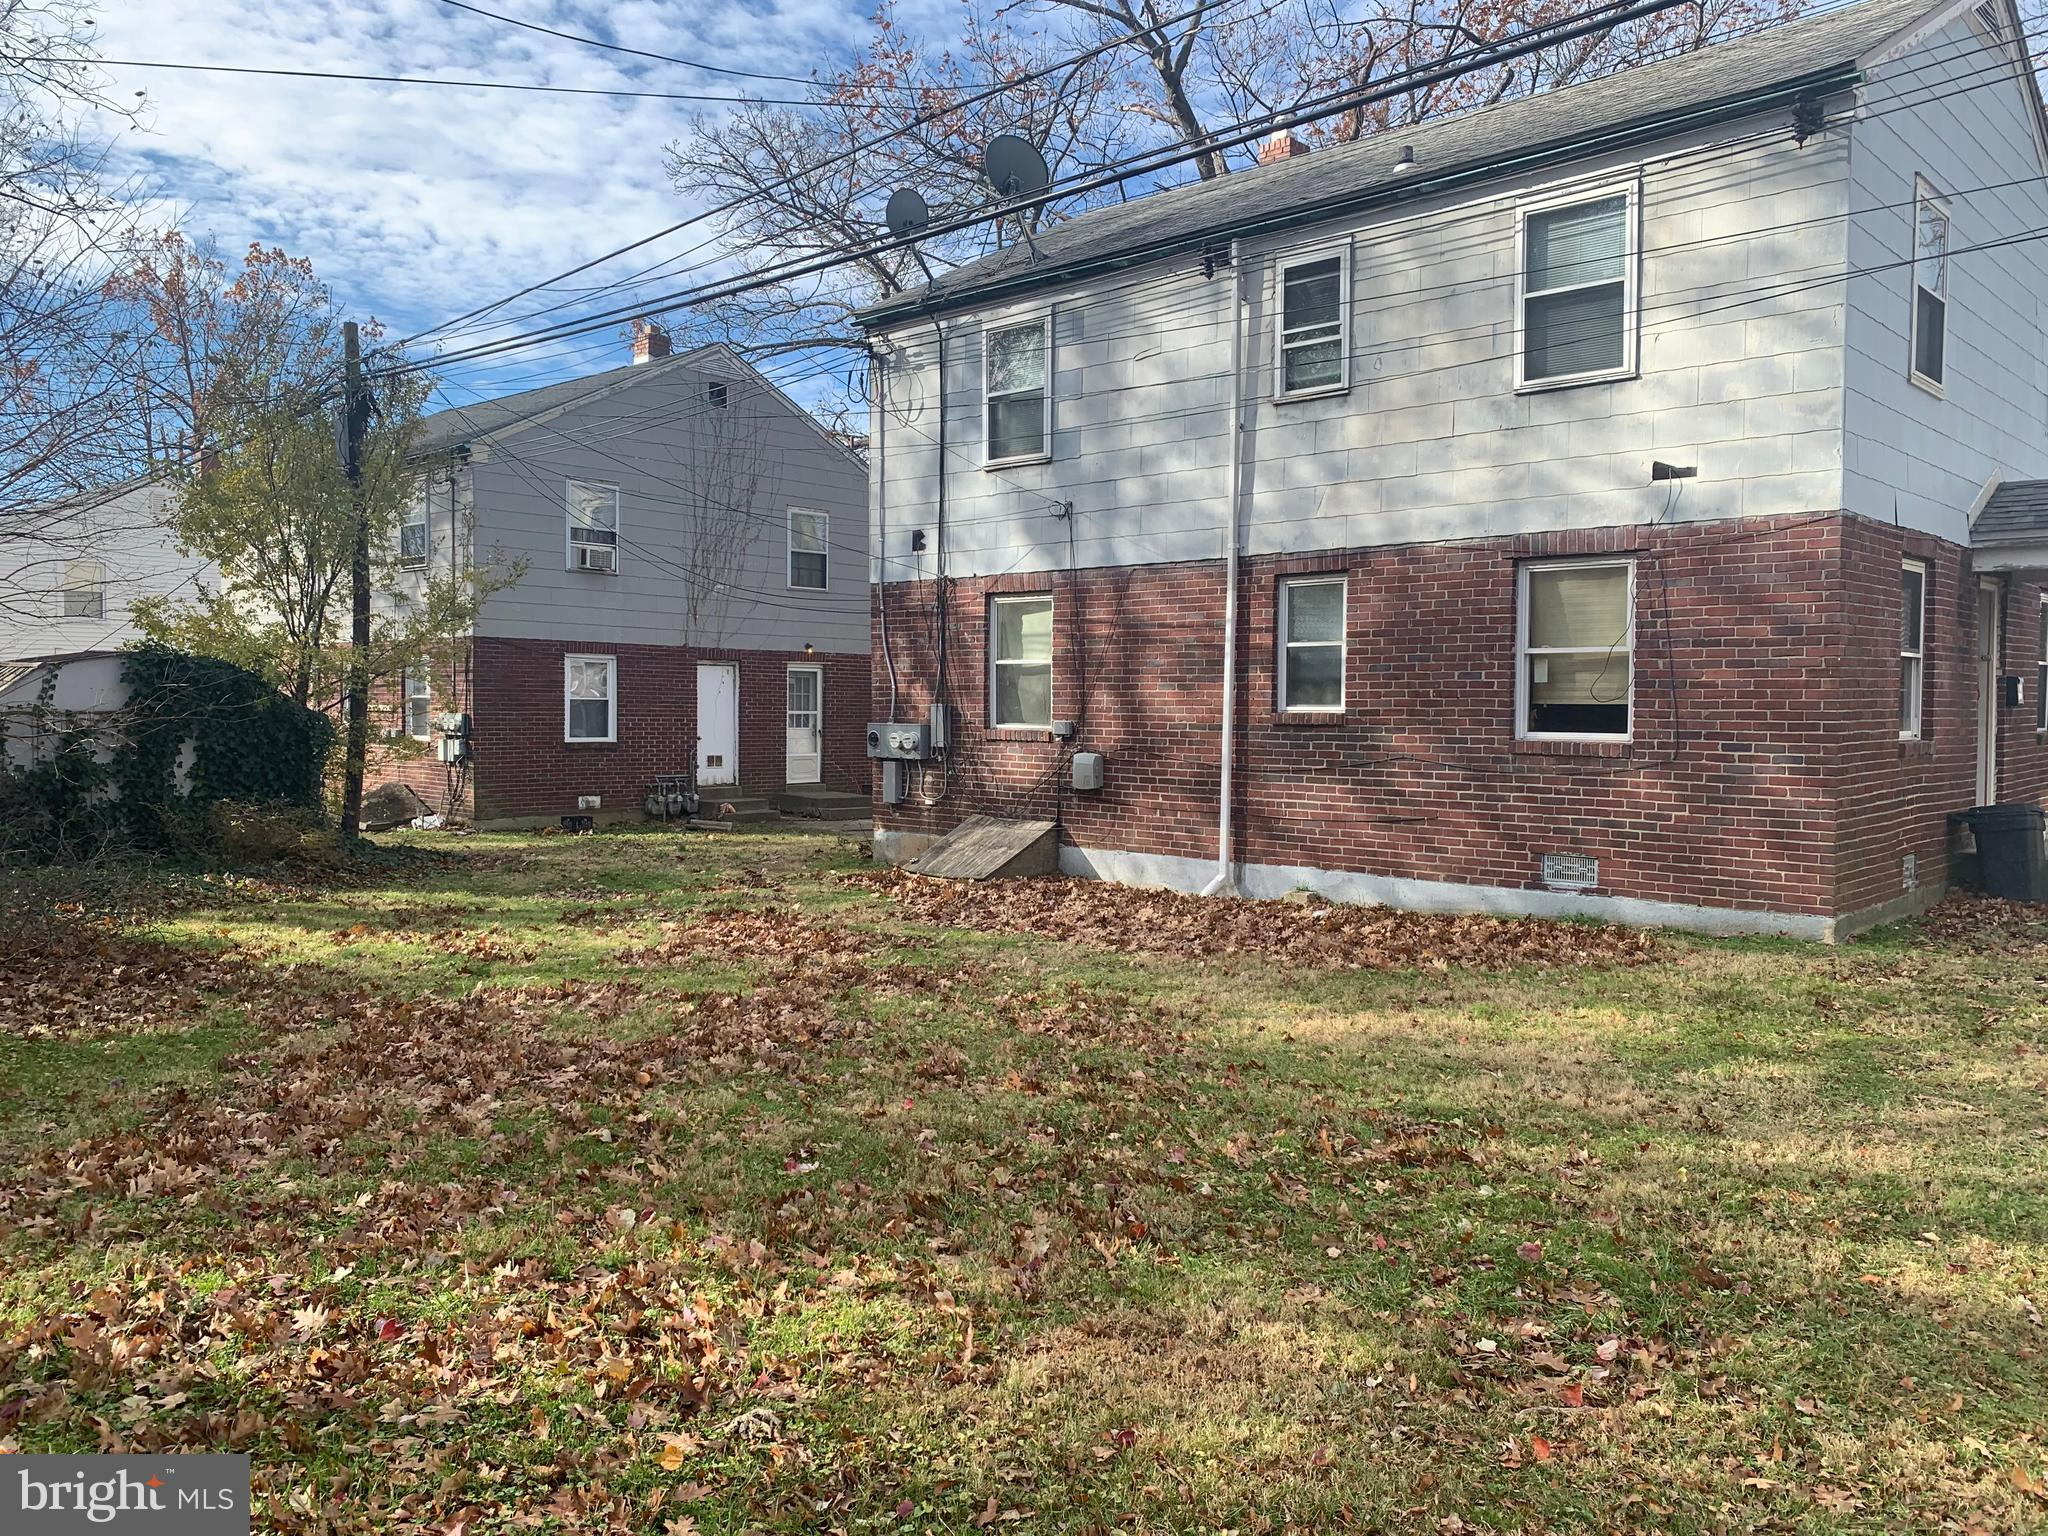 209 GRAY STREET, CHESTER, PA 19013